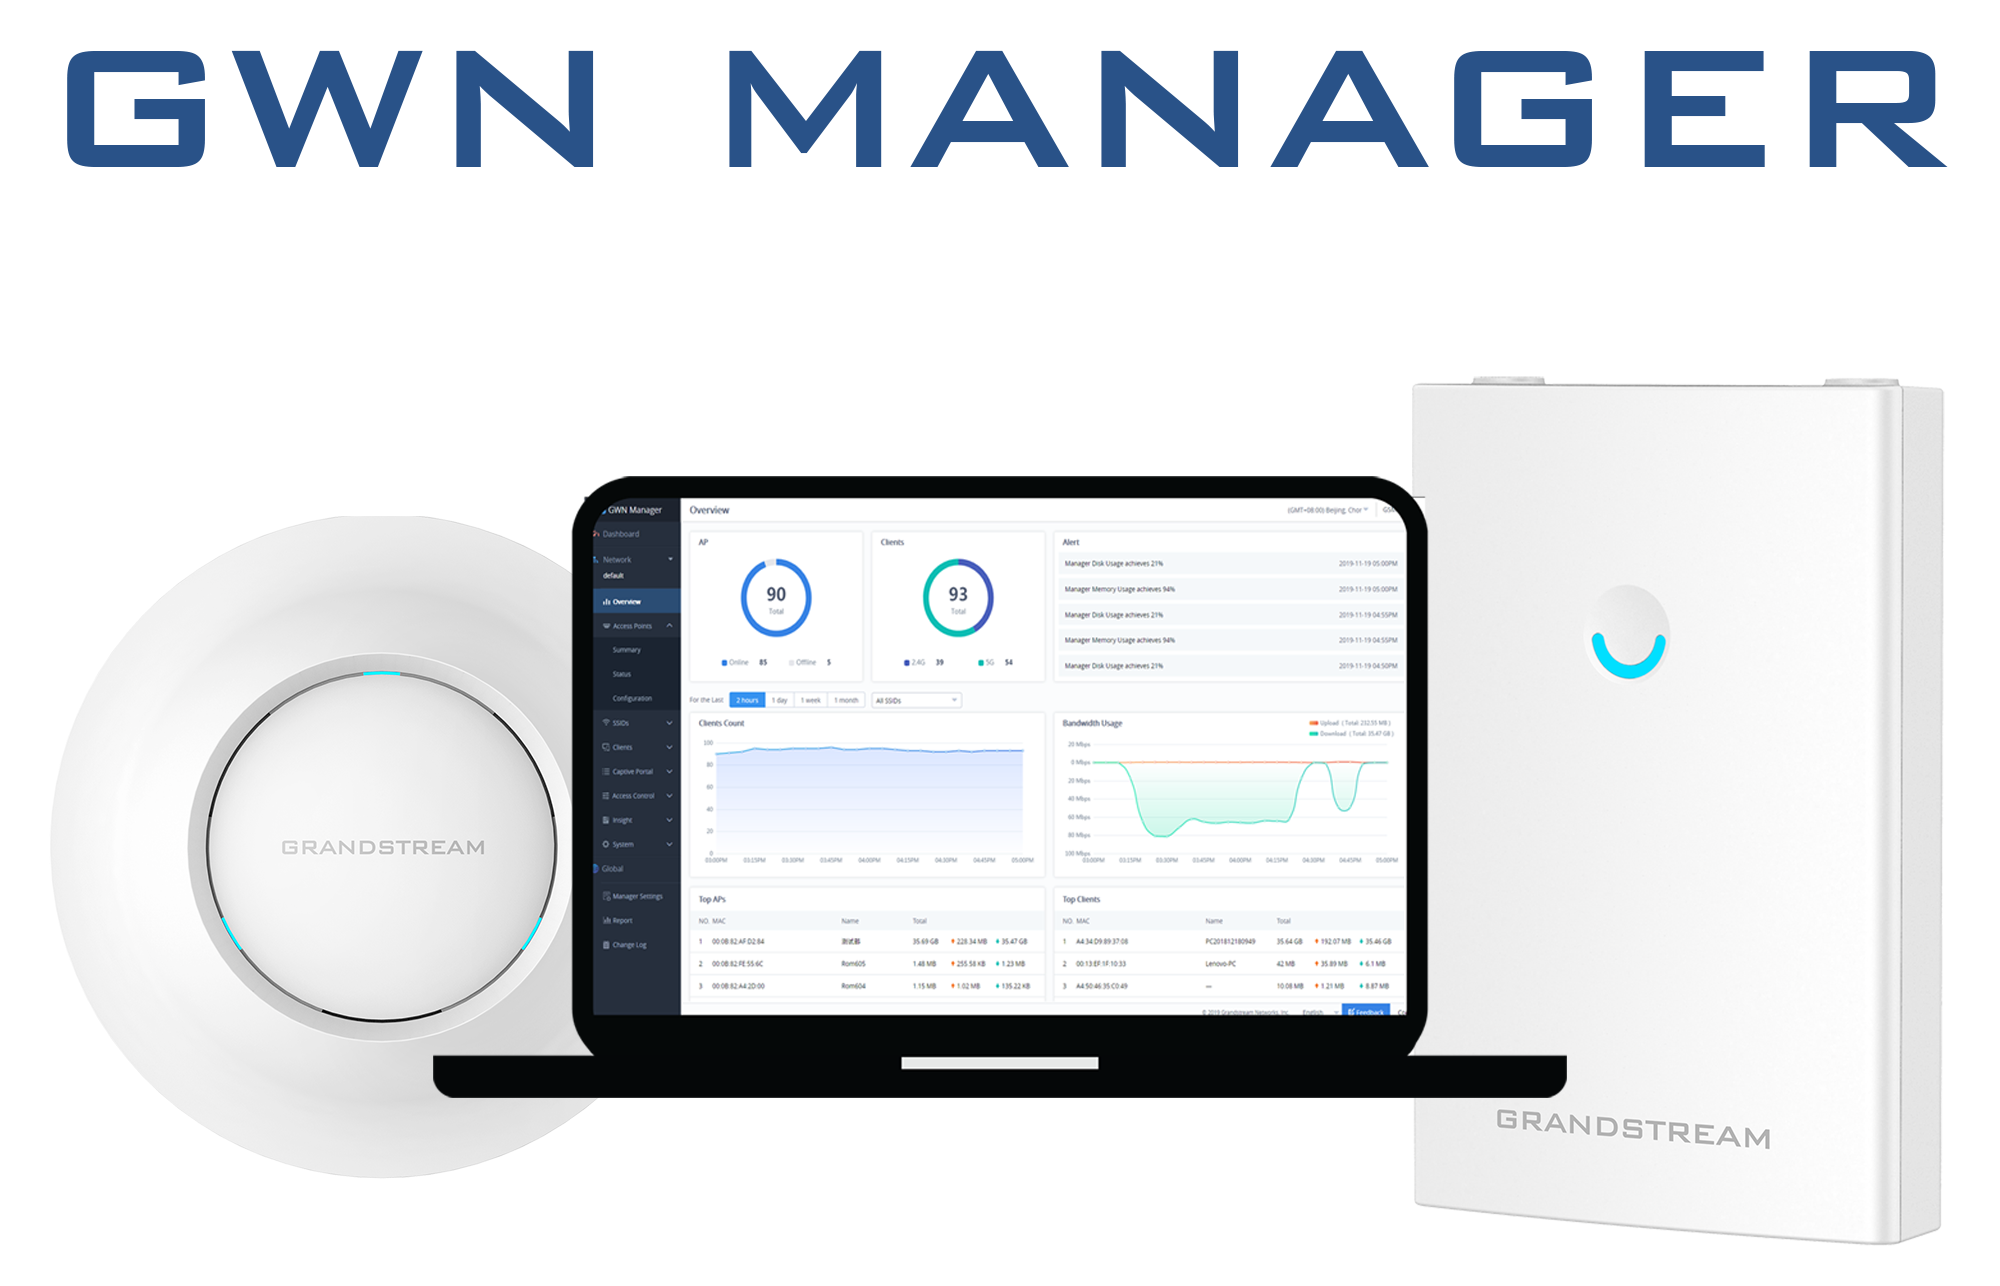 Grandstream Officially Releases On-Premise Software Controller for Wi-Fi APs